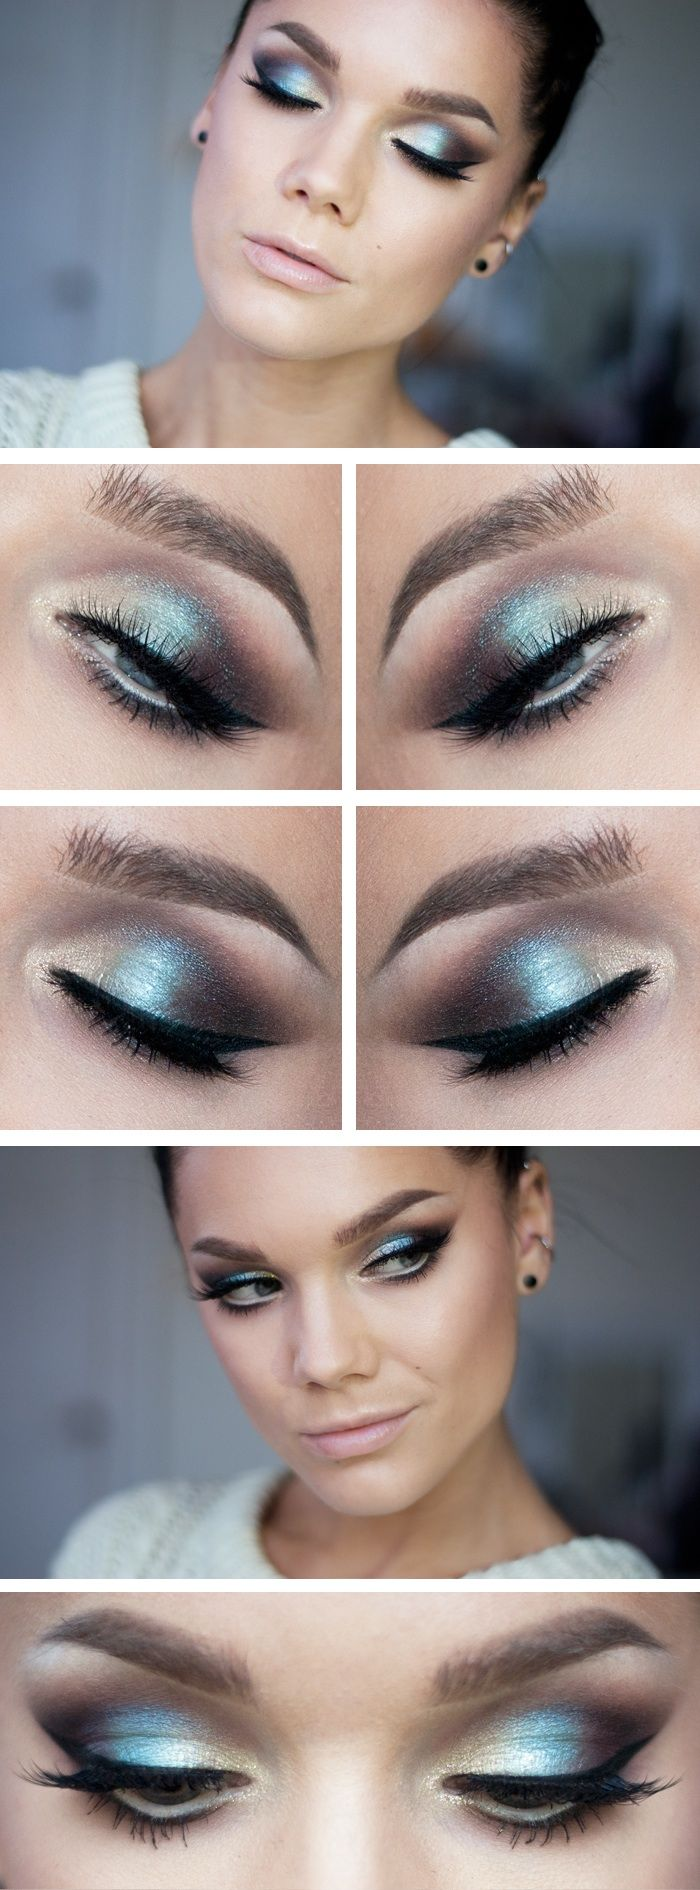 best made to be pretty beauty images on pinterest make up